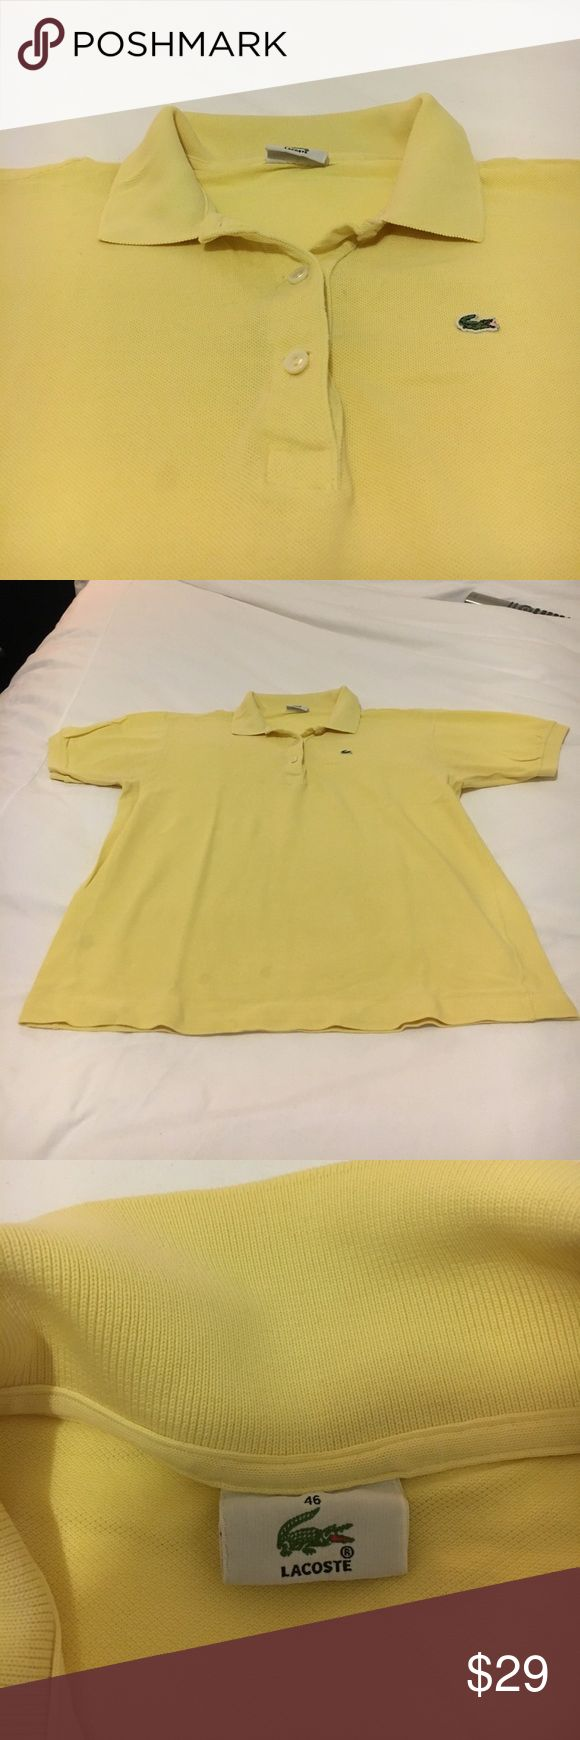 Lacoste classic fit pique polo shirt Lacoste classic fit pique polo shirt. Yellow. Good condition. Lacoste Tops Tees - Short Sleeve